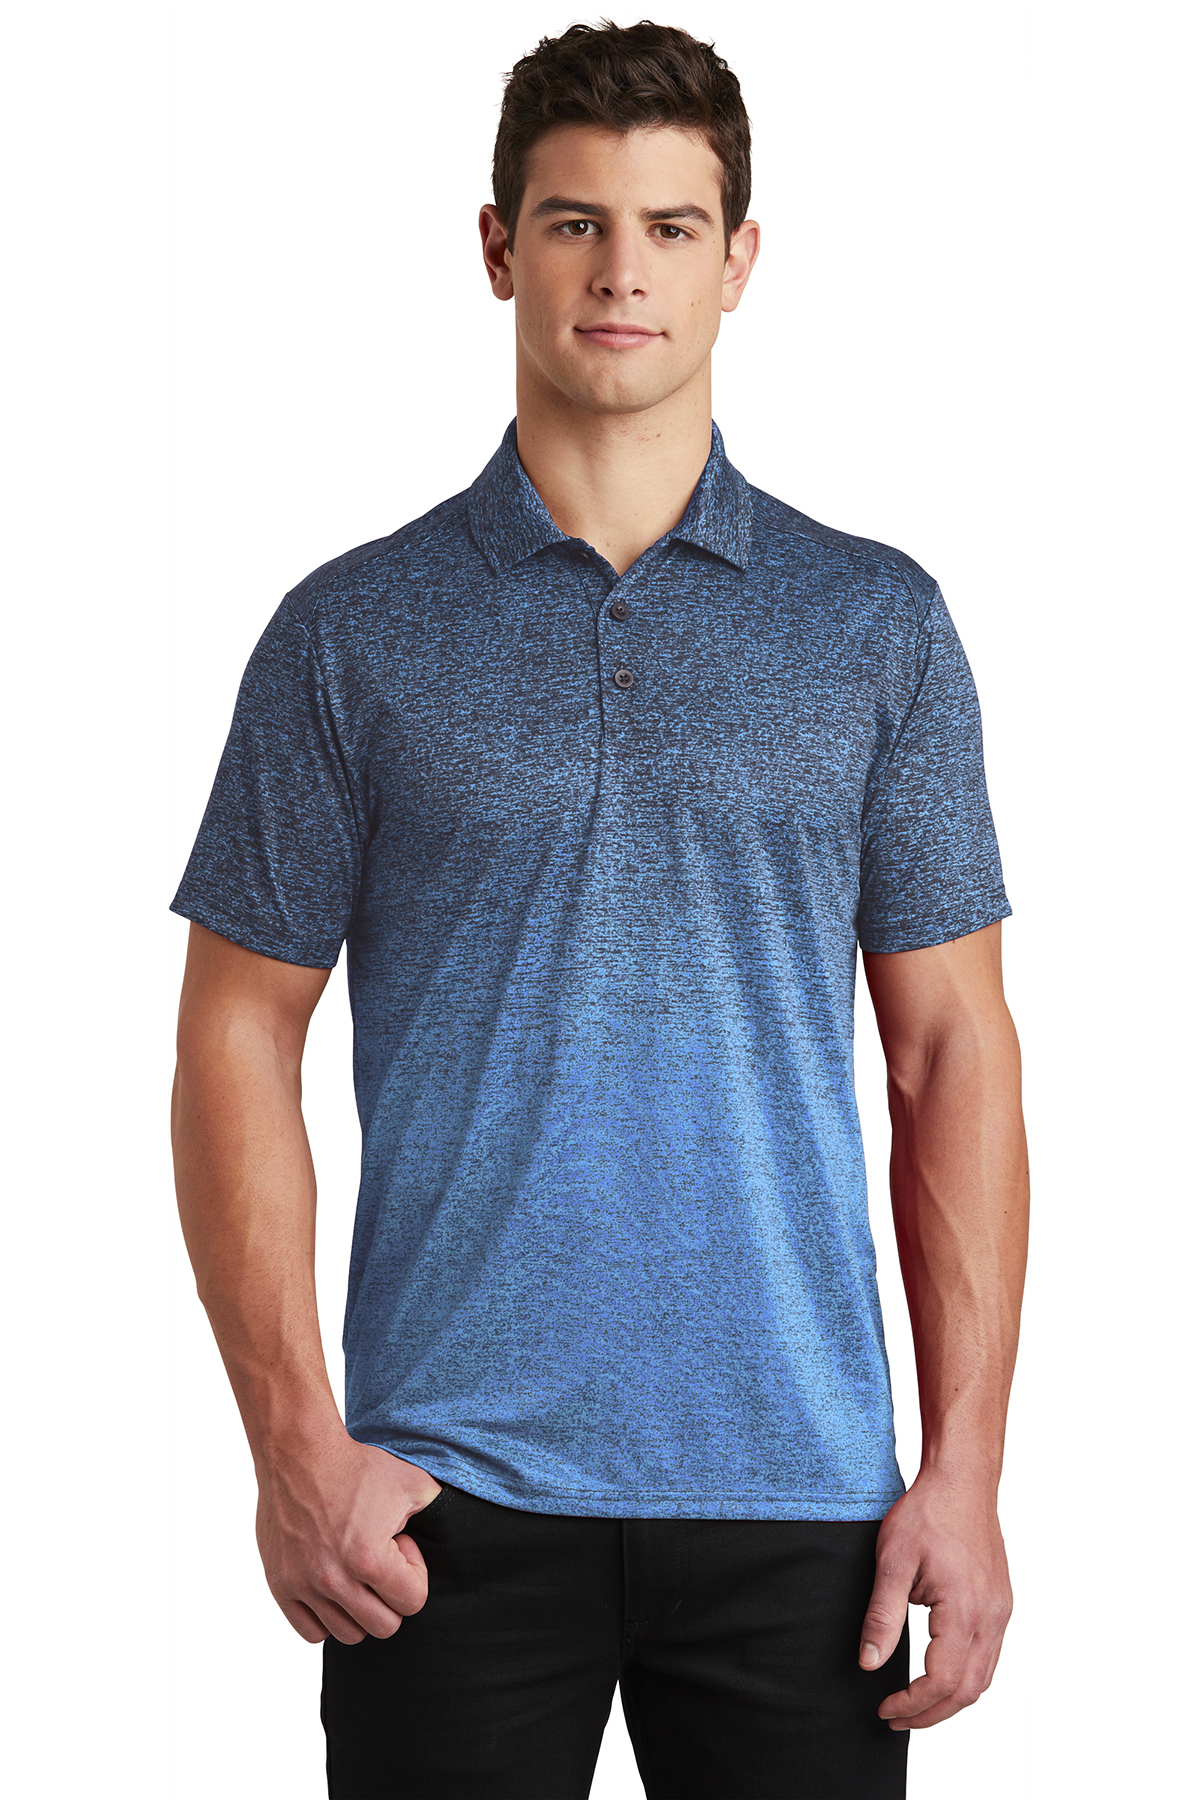 Sport Tek St671 Men S Ombre Heather Polo 19 12 Men S Sport Shirts Shop our range of men's polo shirts online at jd sports ✓ express delivery available ✓buy now, pay bringin' you stepped up, everyday style, our range of men's polo shirts keeps your look classic. sport tek st671 men s ombre heather polo 19 12 men s sport shirts